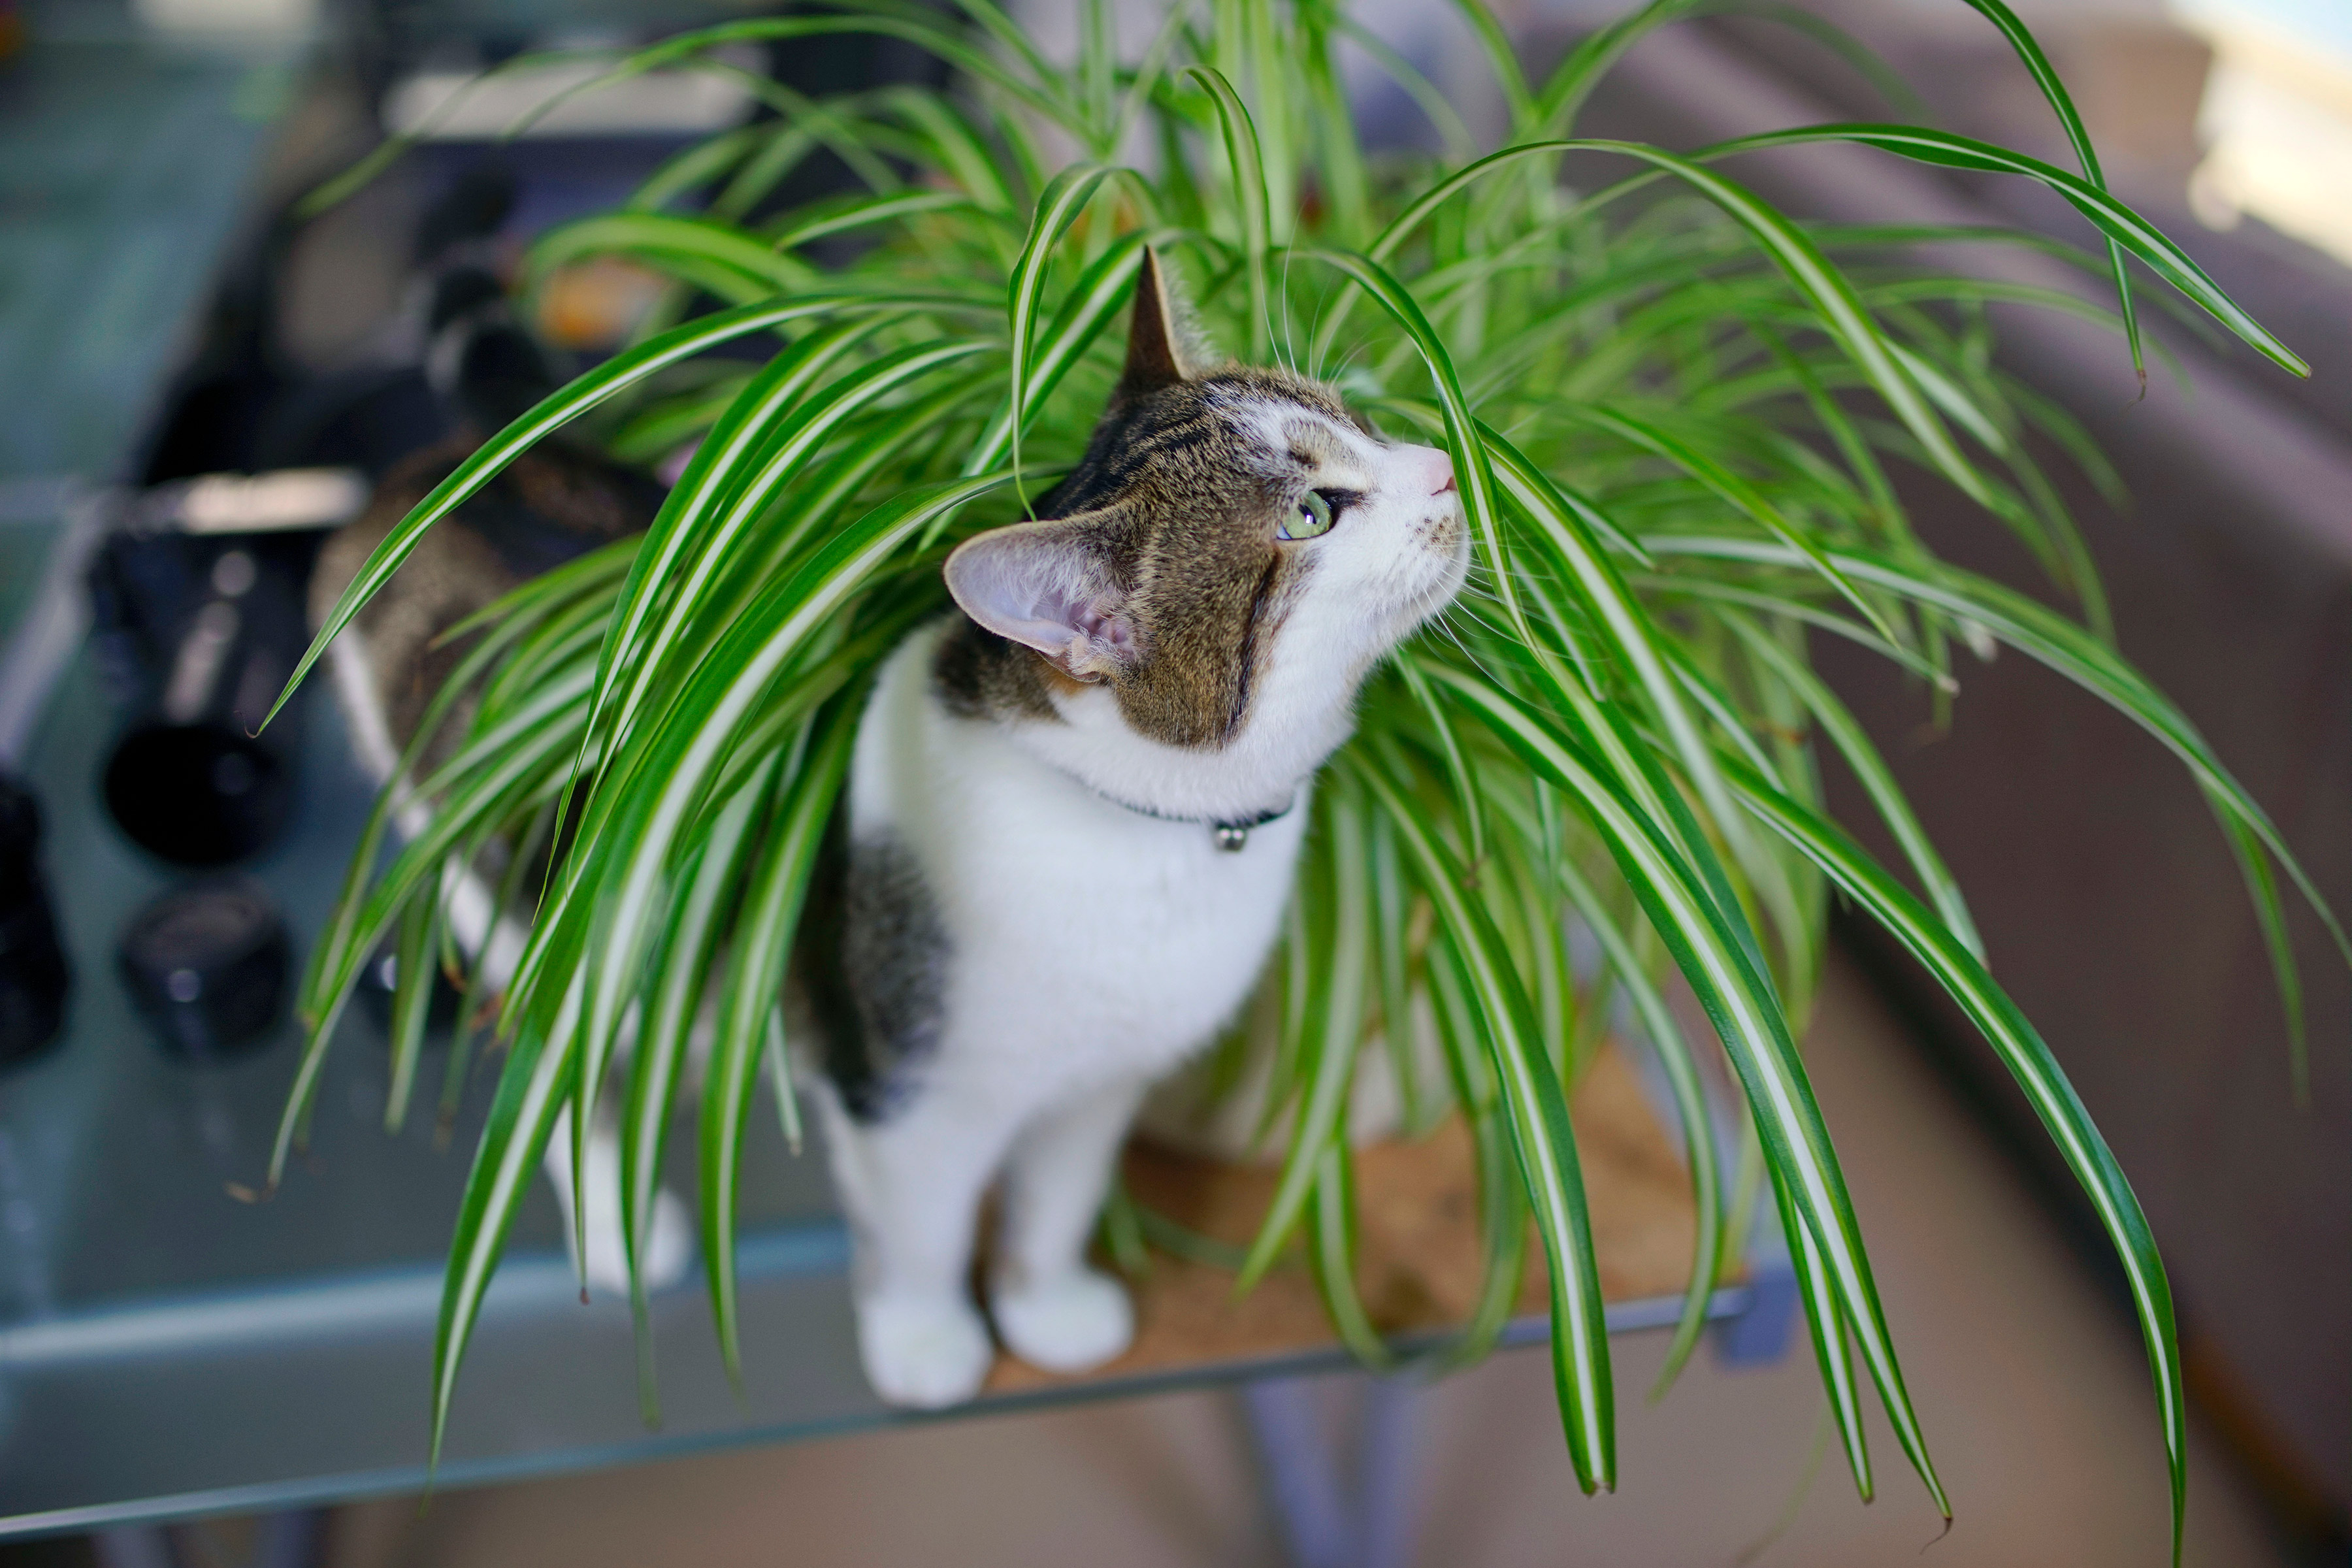 A cat sitting in a spider plant.